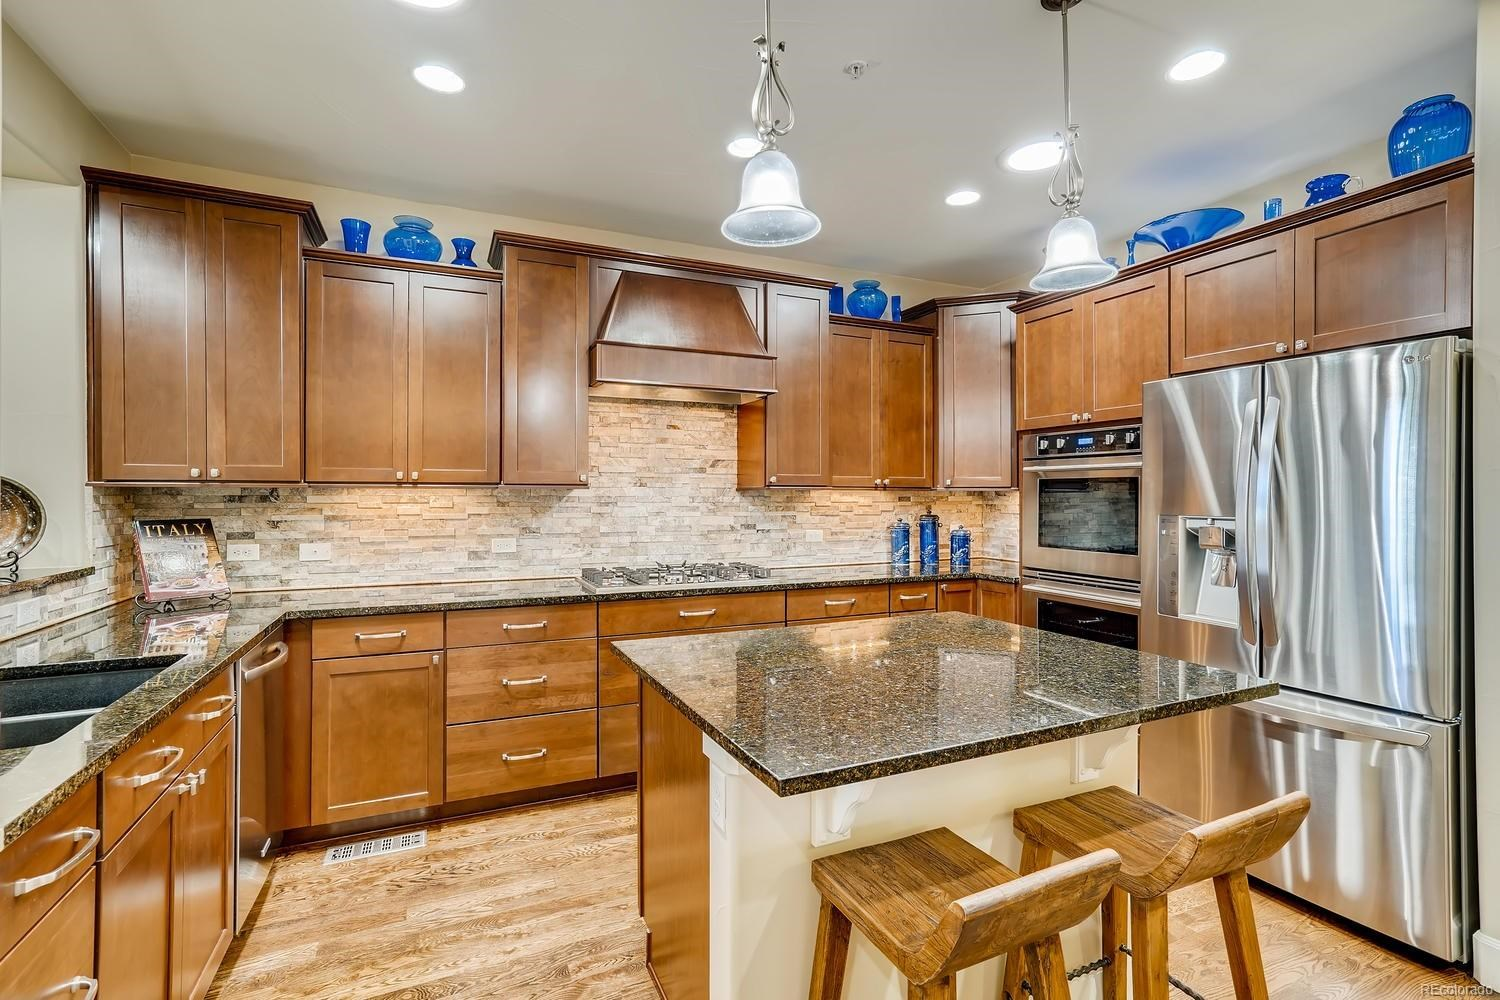 MLS# 2956952 - 8 - 2065 Primo Road #C, Highlands Ranch, CO 80129